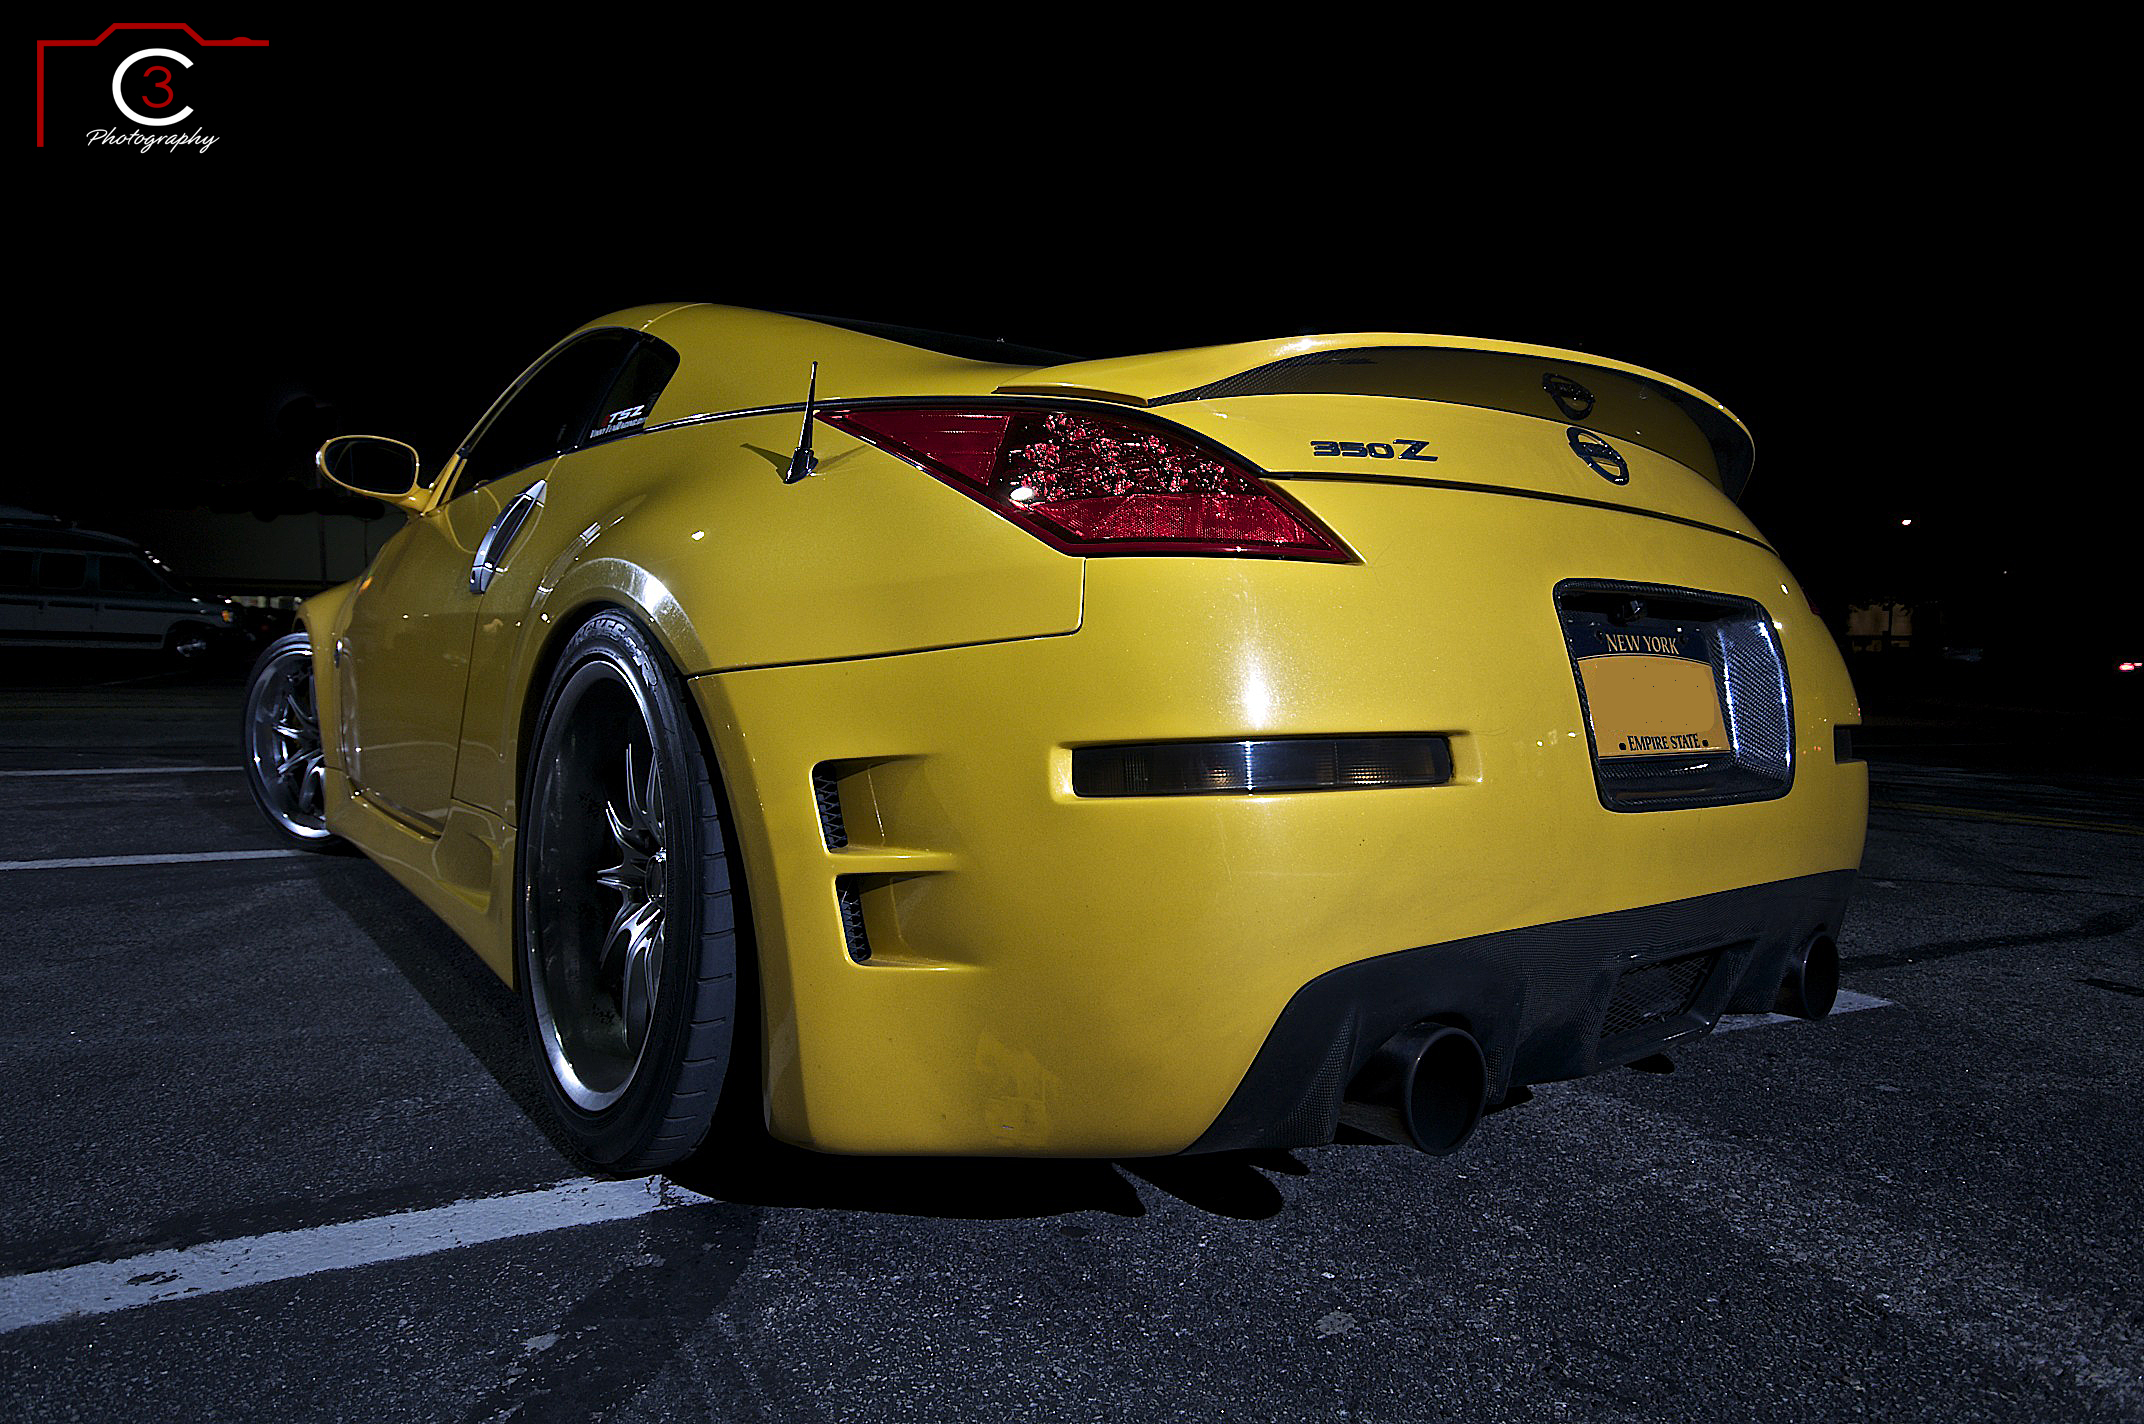 Pop's TT VQ35 Powered 350Z